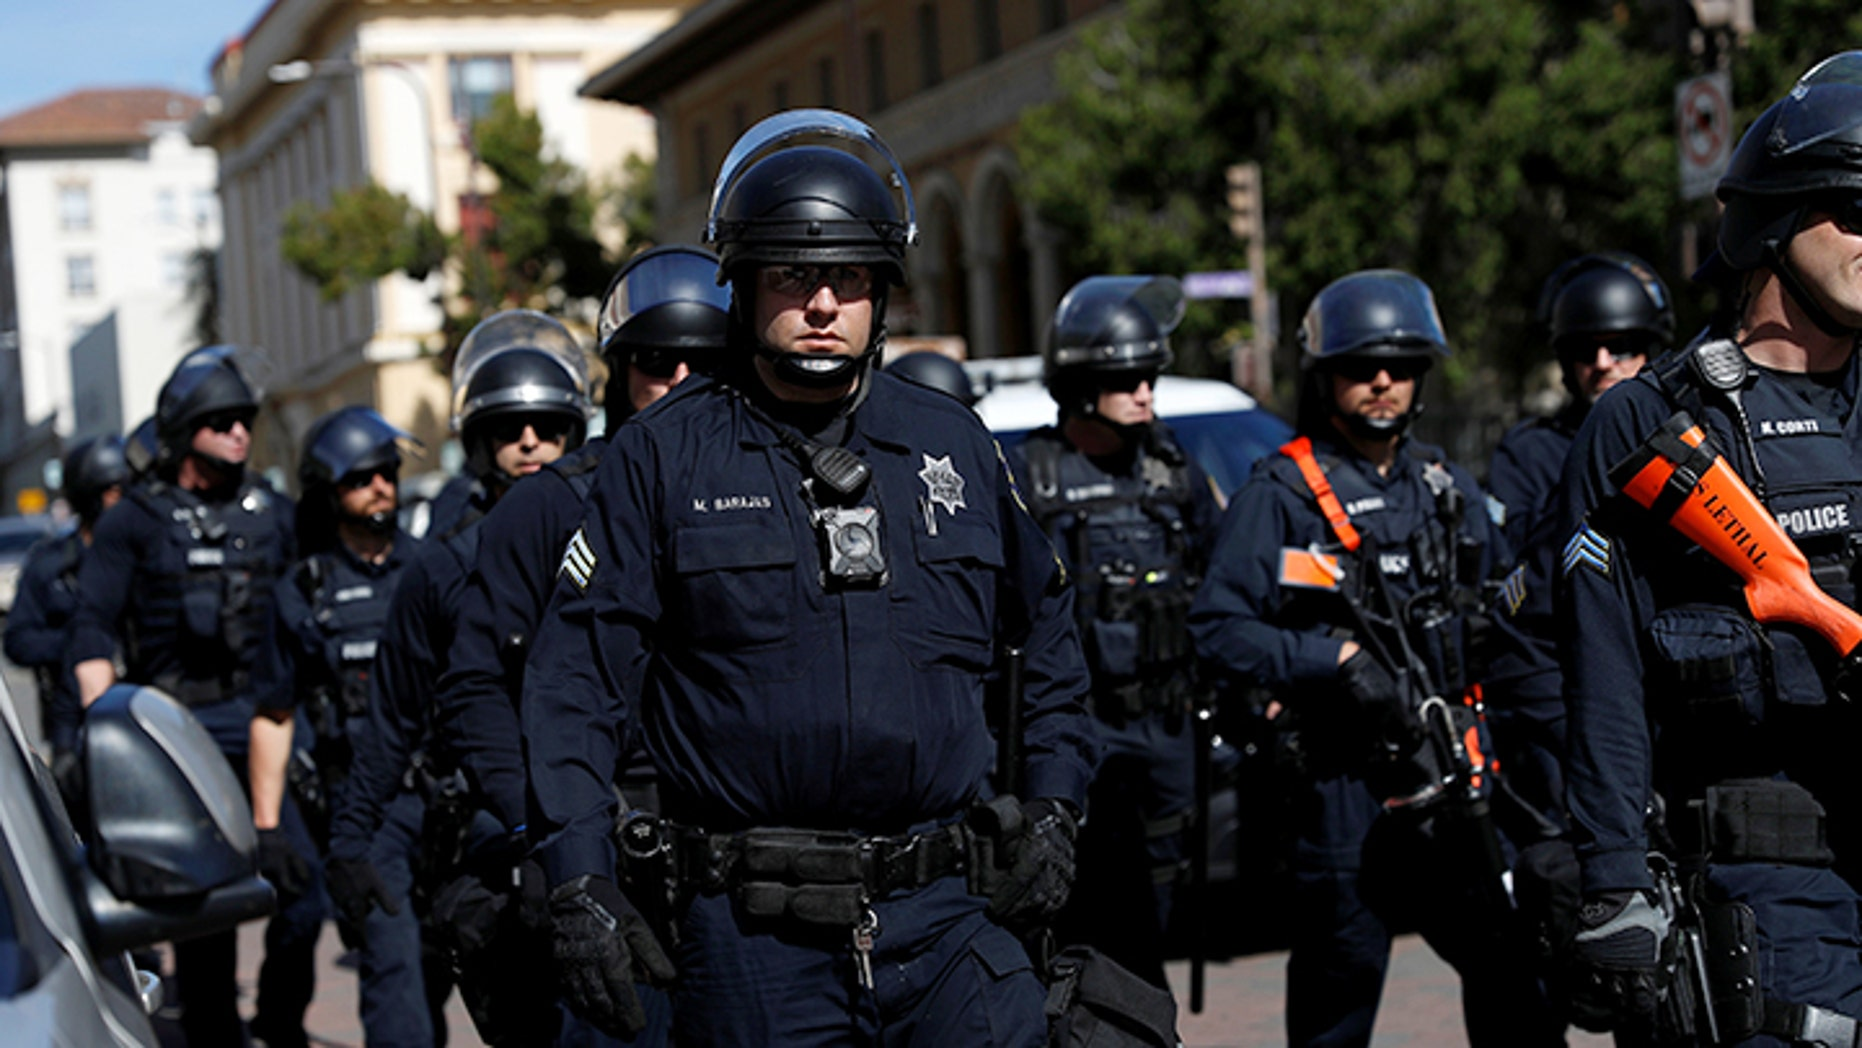 Police in riot gear standing at the ready as opposing factions gather over the cancellation of conservative commentator Ann Coulter's speech at the University of California, Berkeley, last April.